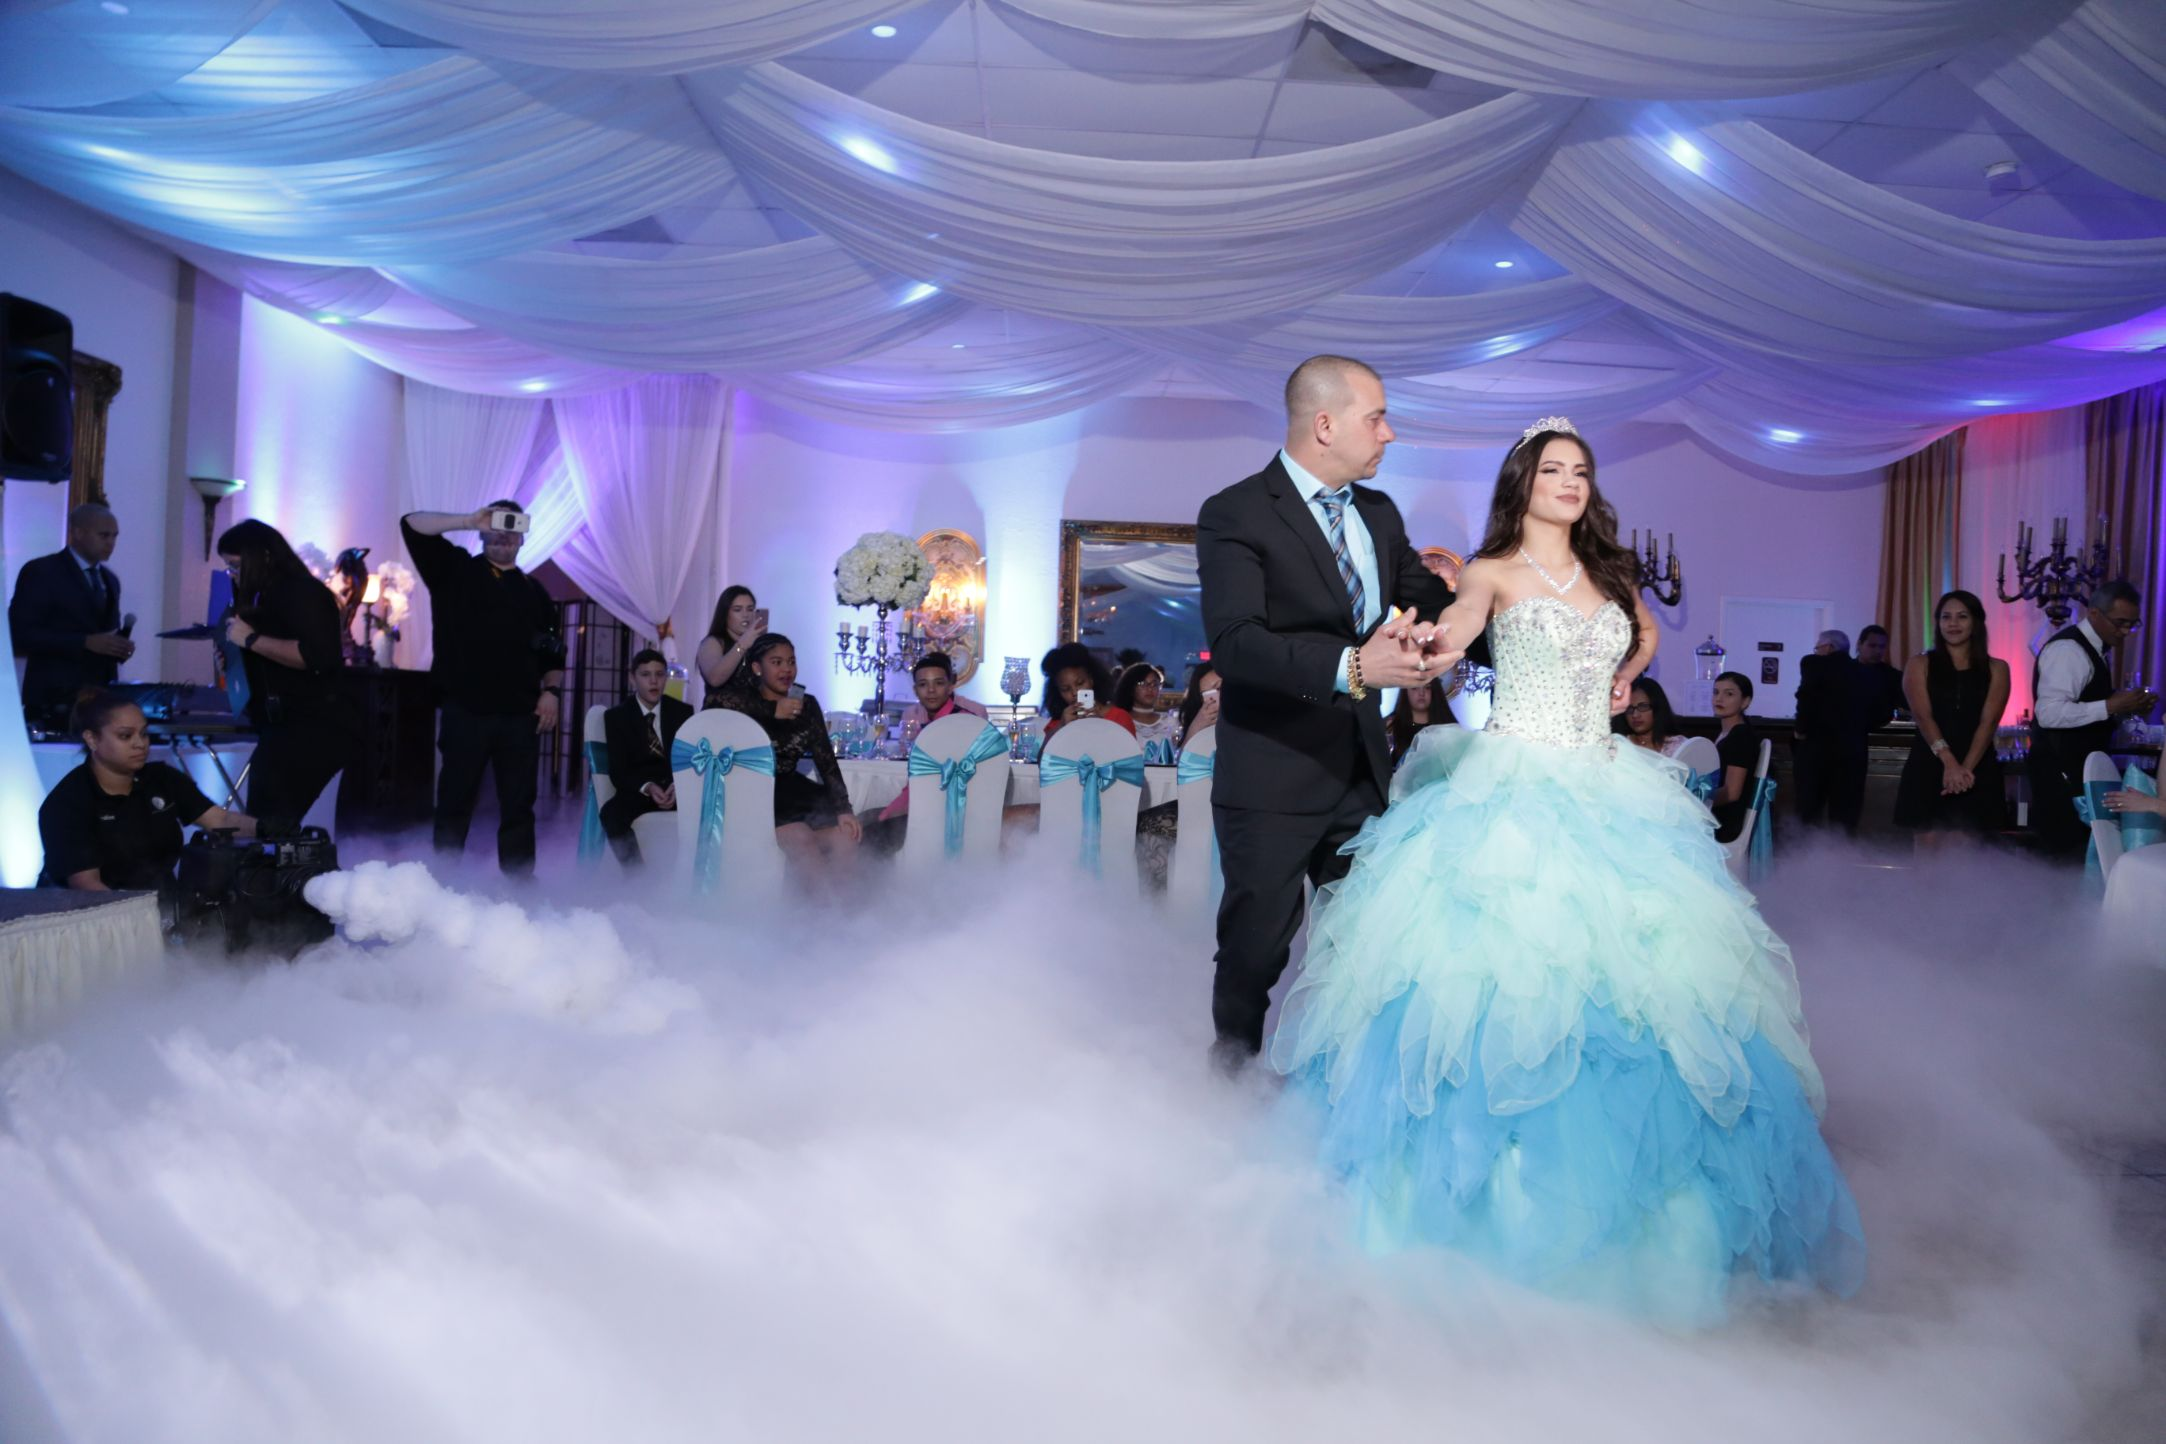 IMG 9245 xclusive deejays winter springs florida wedding dj lighting photo booth entertainment